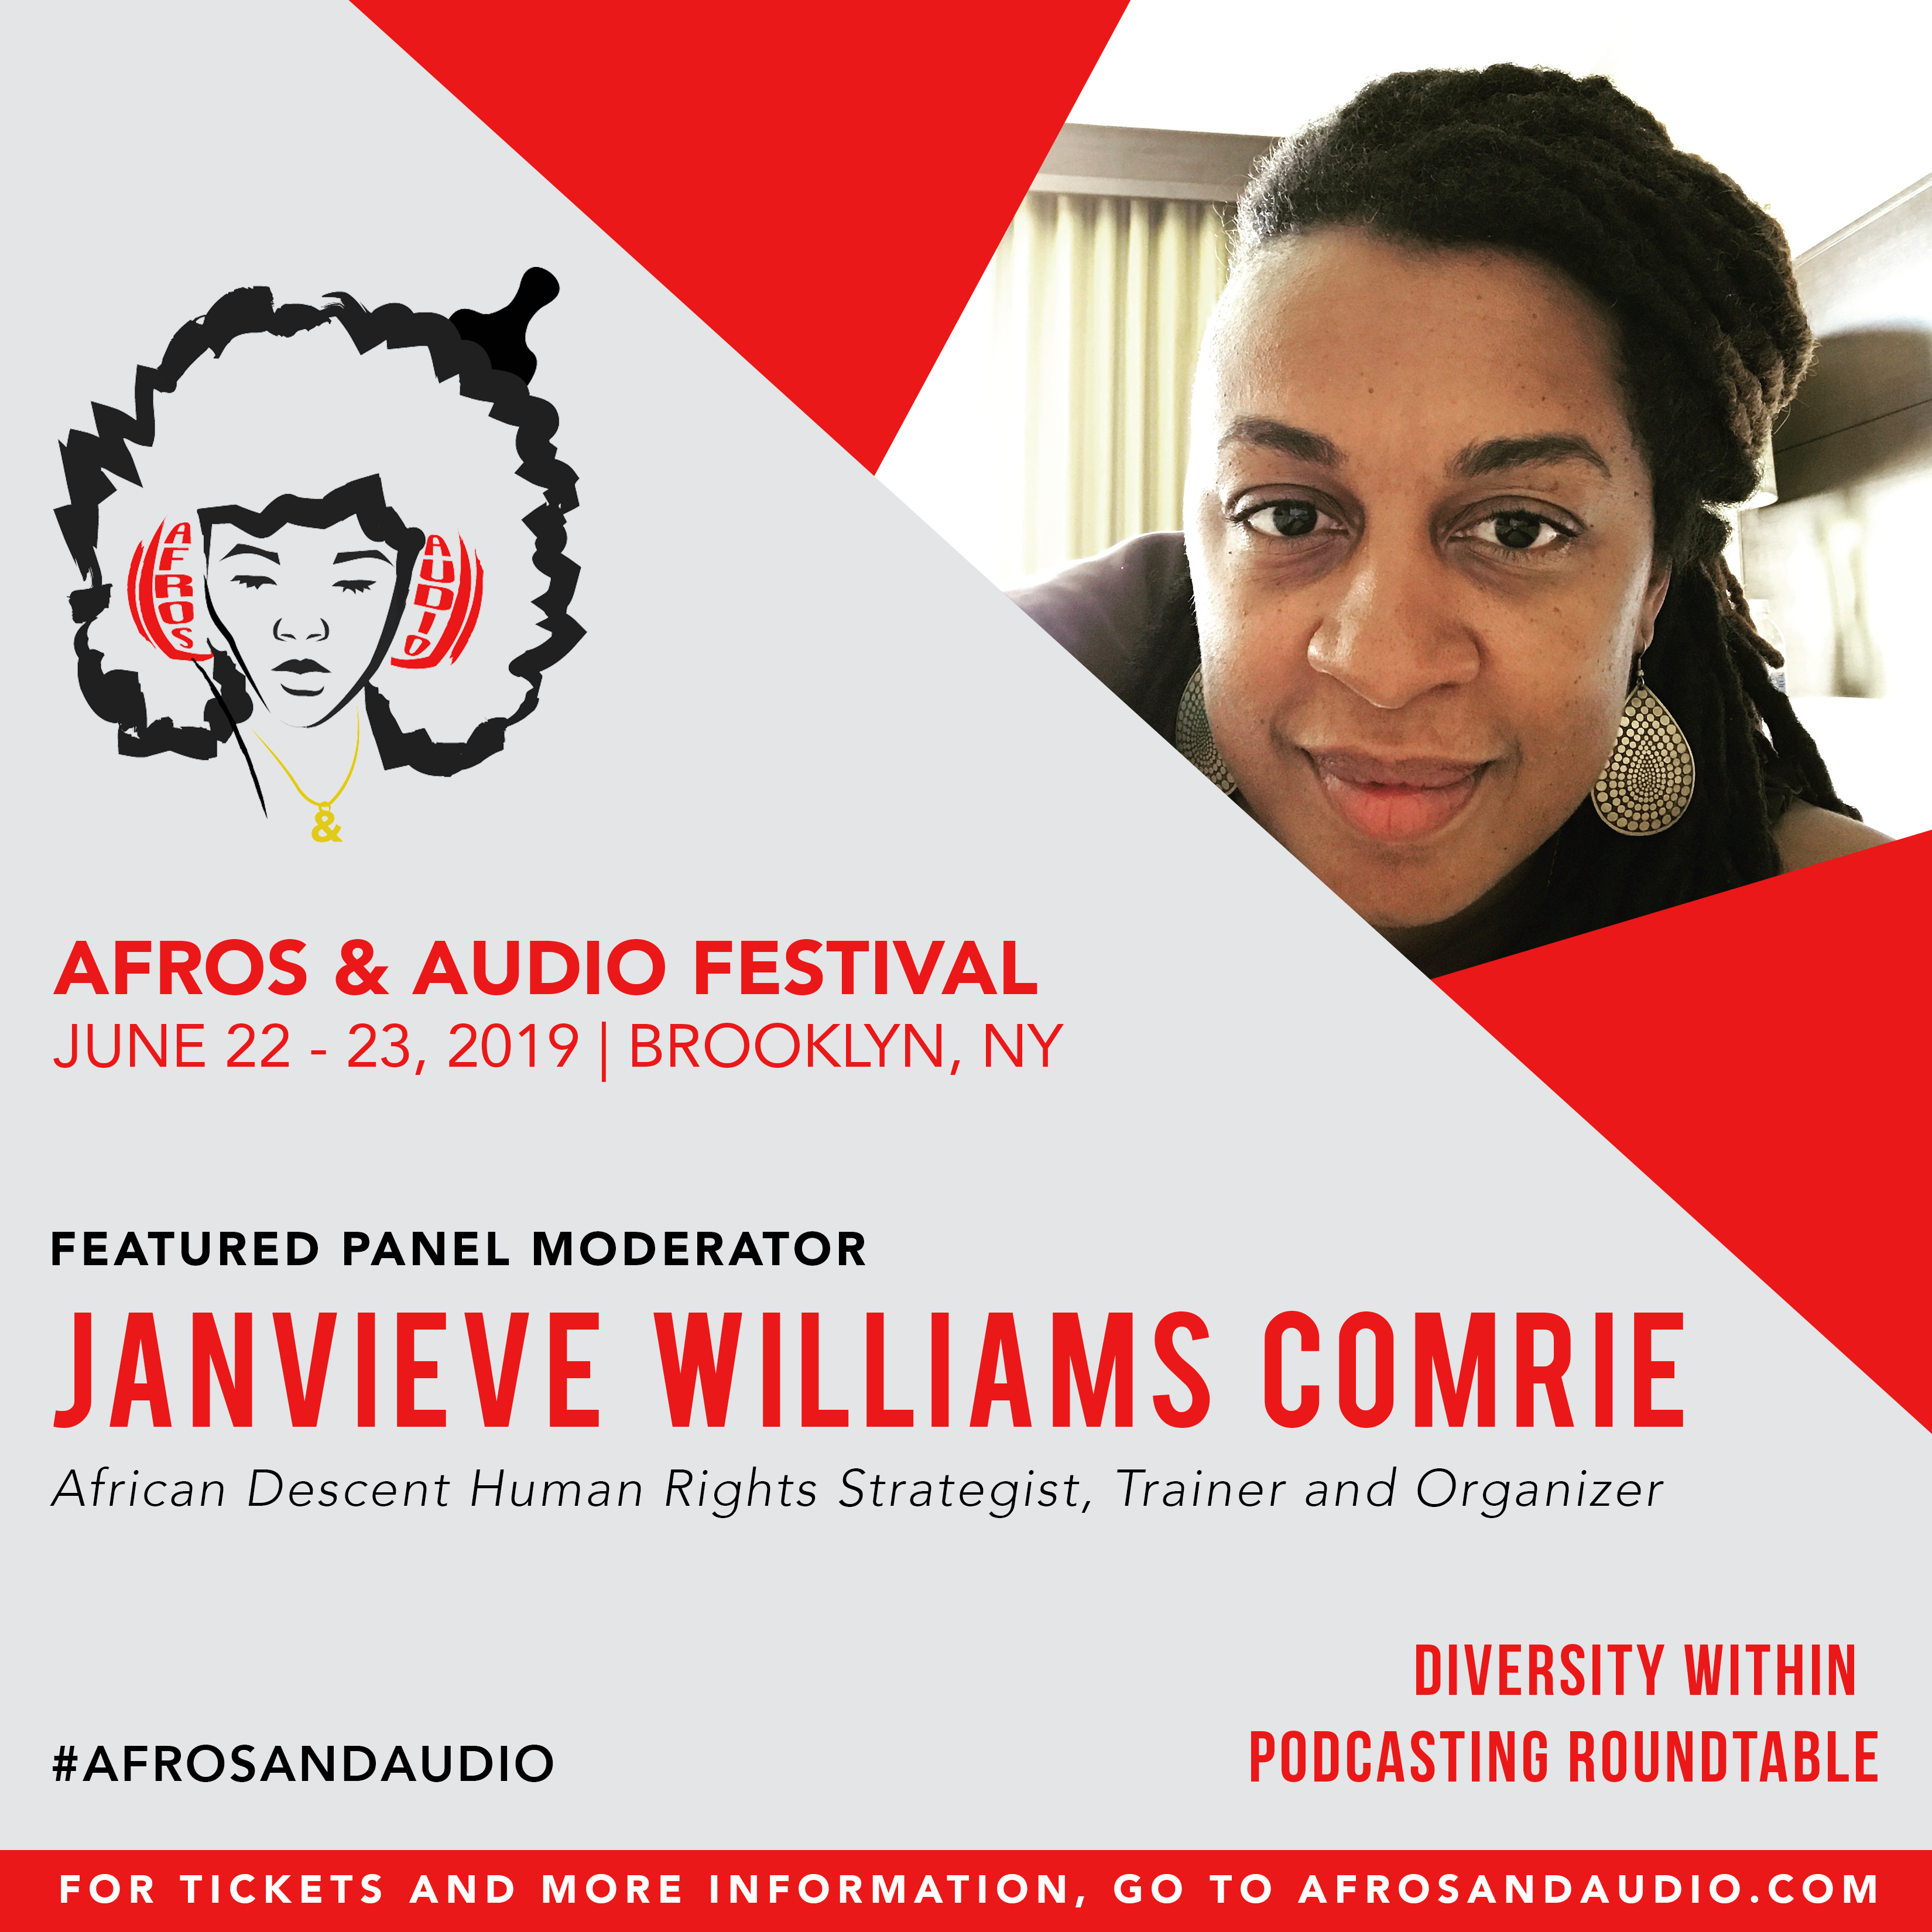 AfrosandAudio Presenter Posts - Janvieve